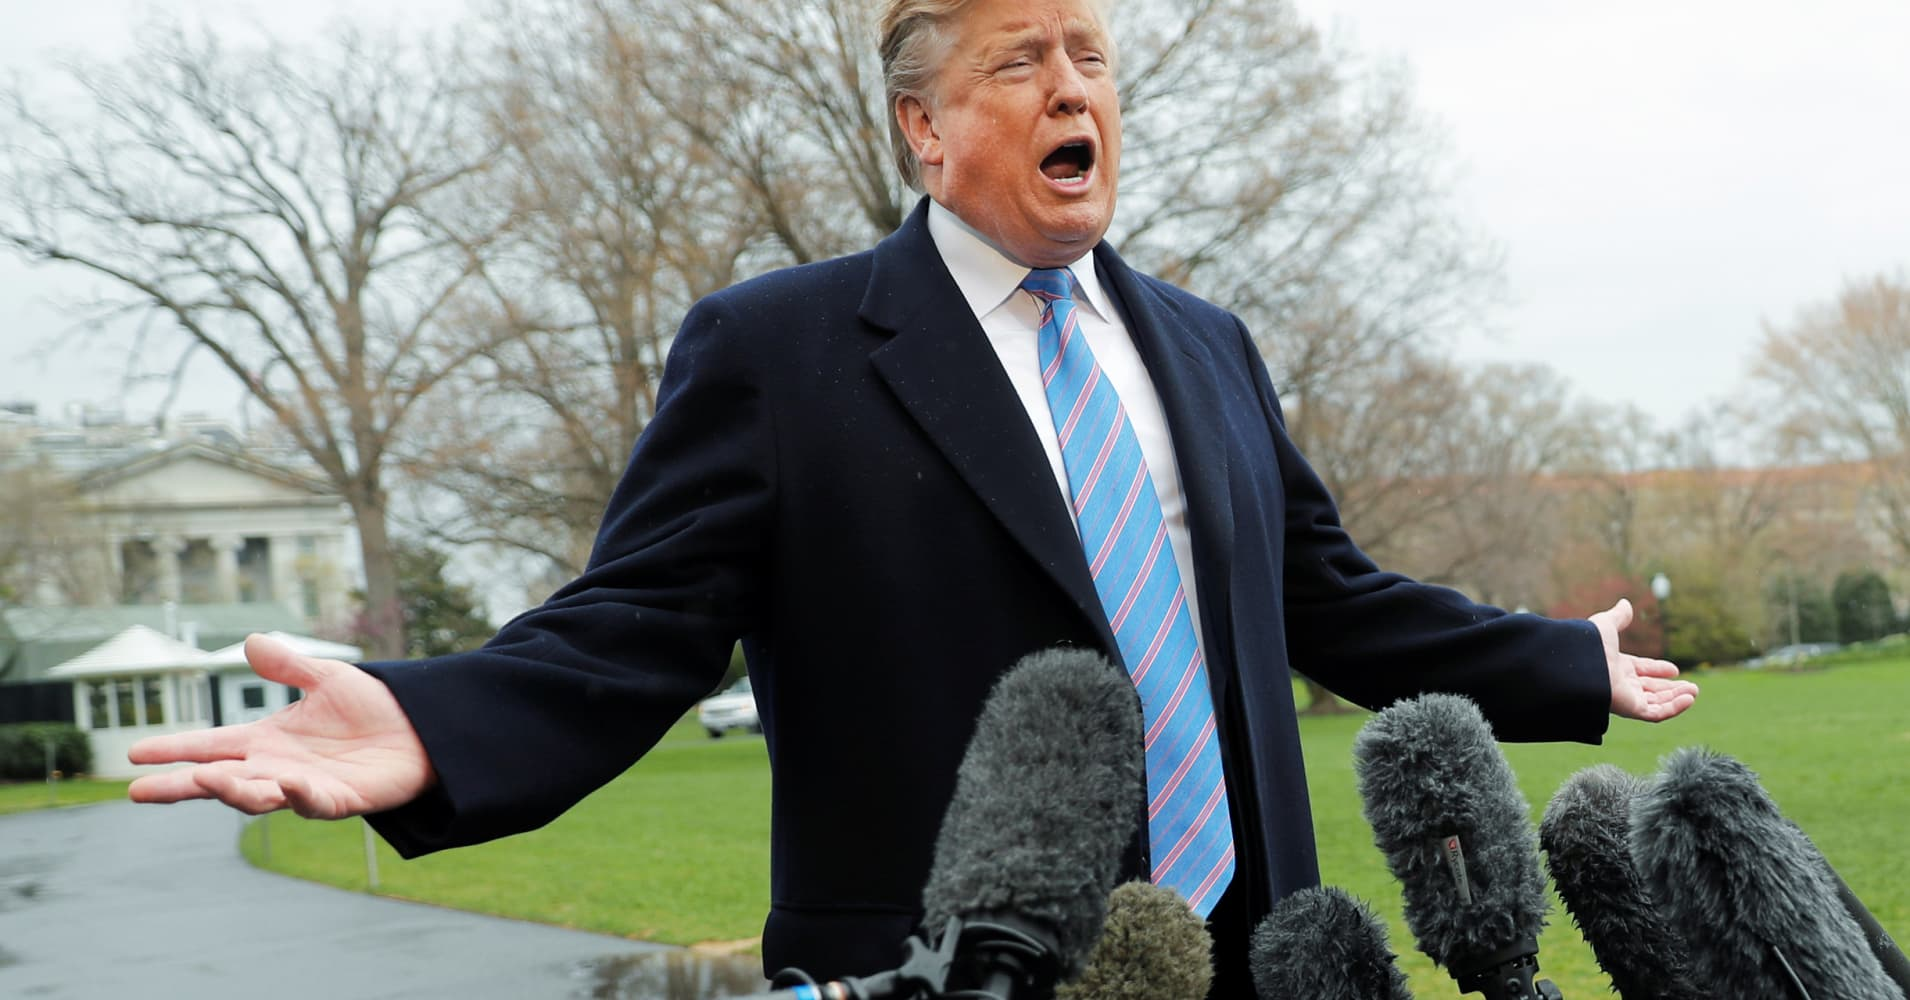 Trump says he has not read the Mueller report, but has 'every right to do so'